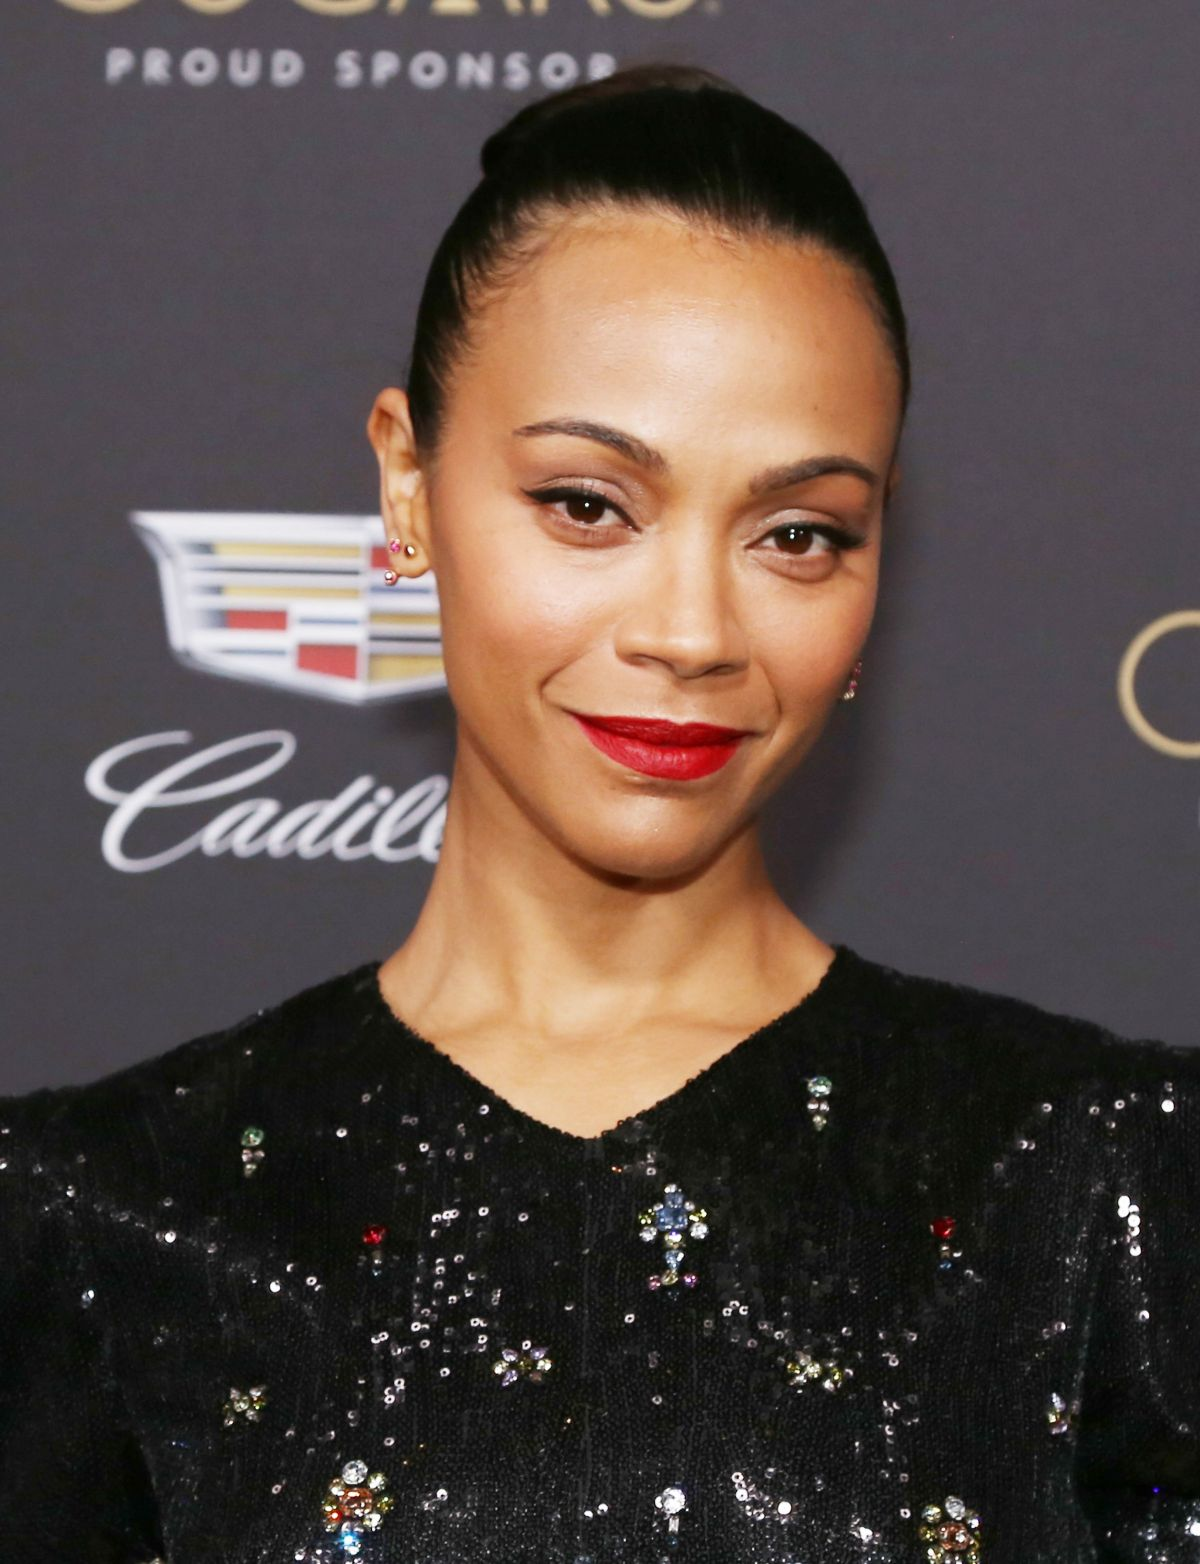 ZOE SALDANA at Cadillac Celebrates 91st Oscars in Los ...